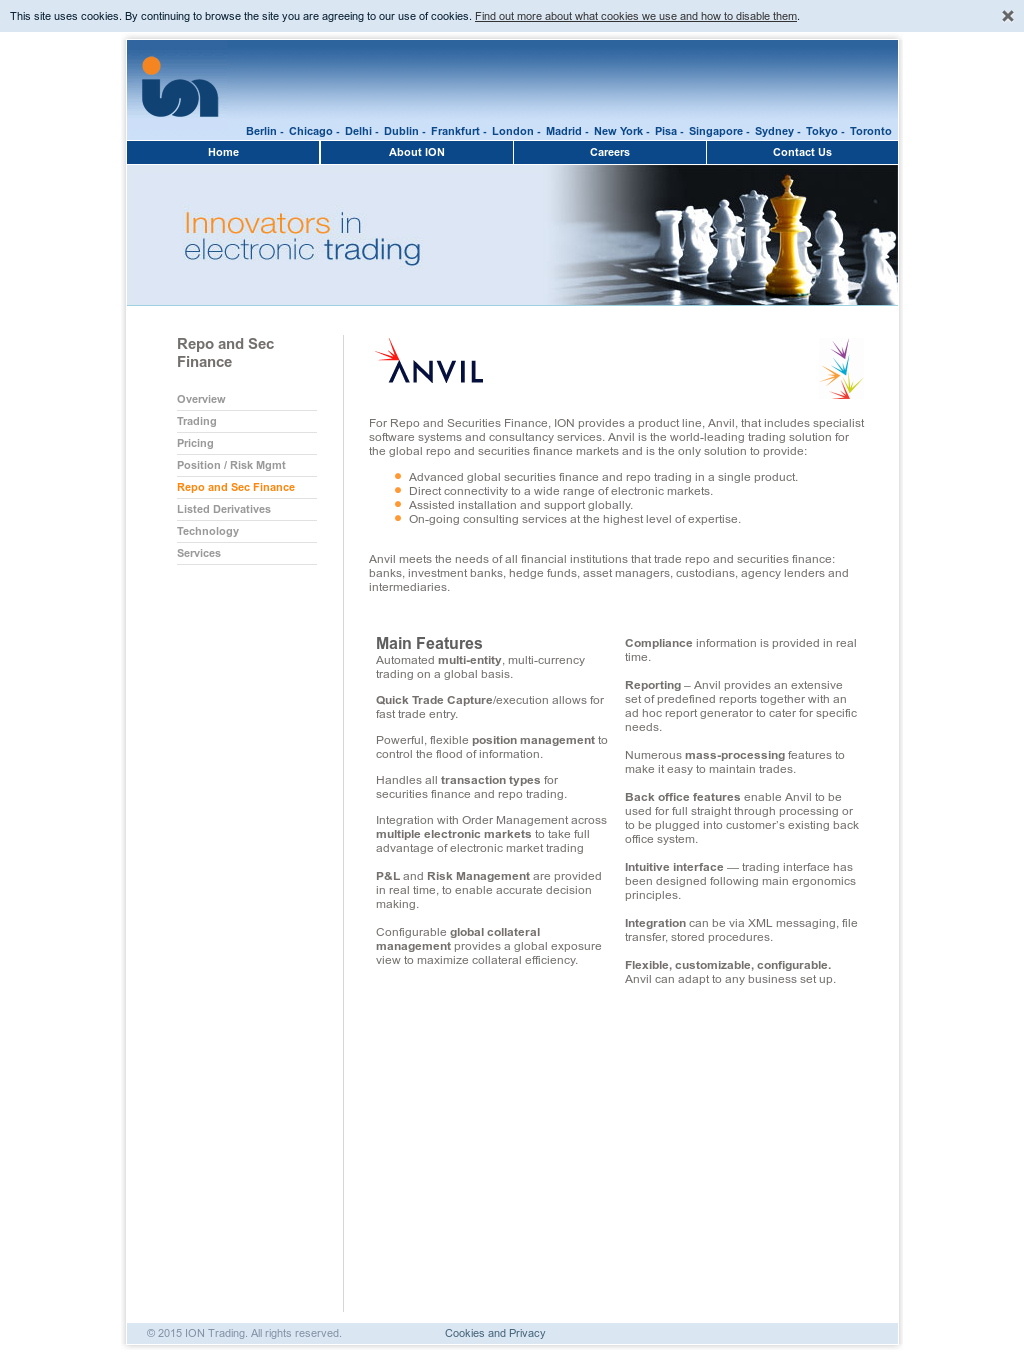 Anvil Software Competitors, Revenue and Employees - Owler